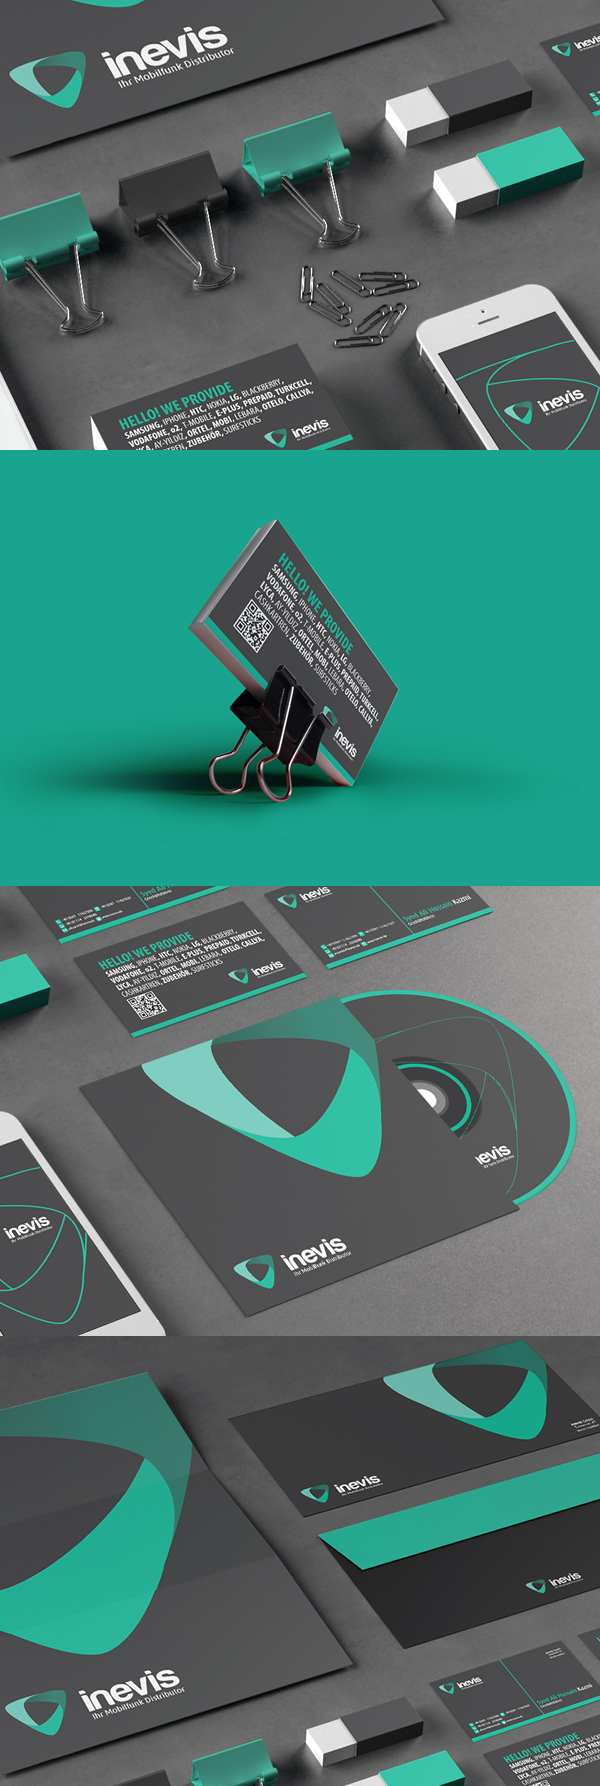 2.Visual Identity and Branding Series  inevis